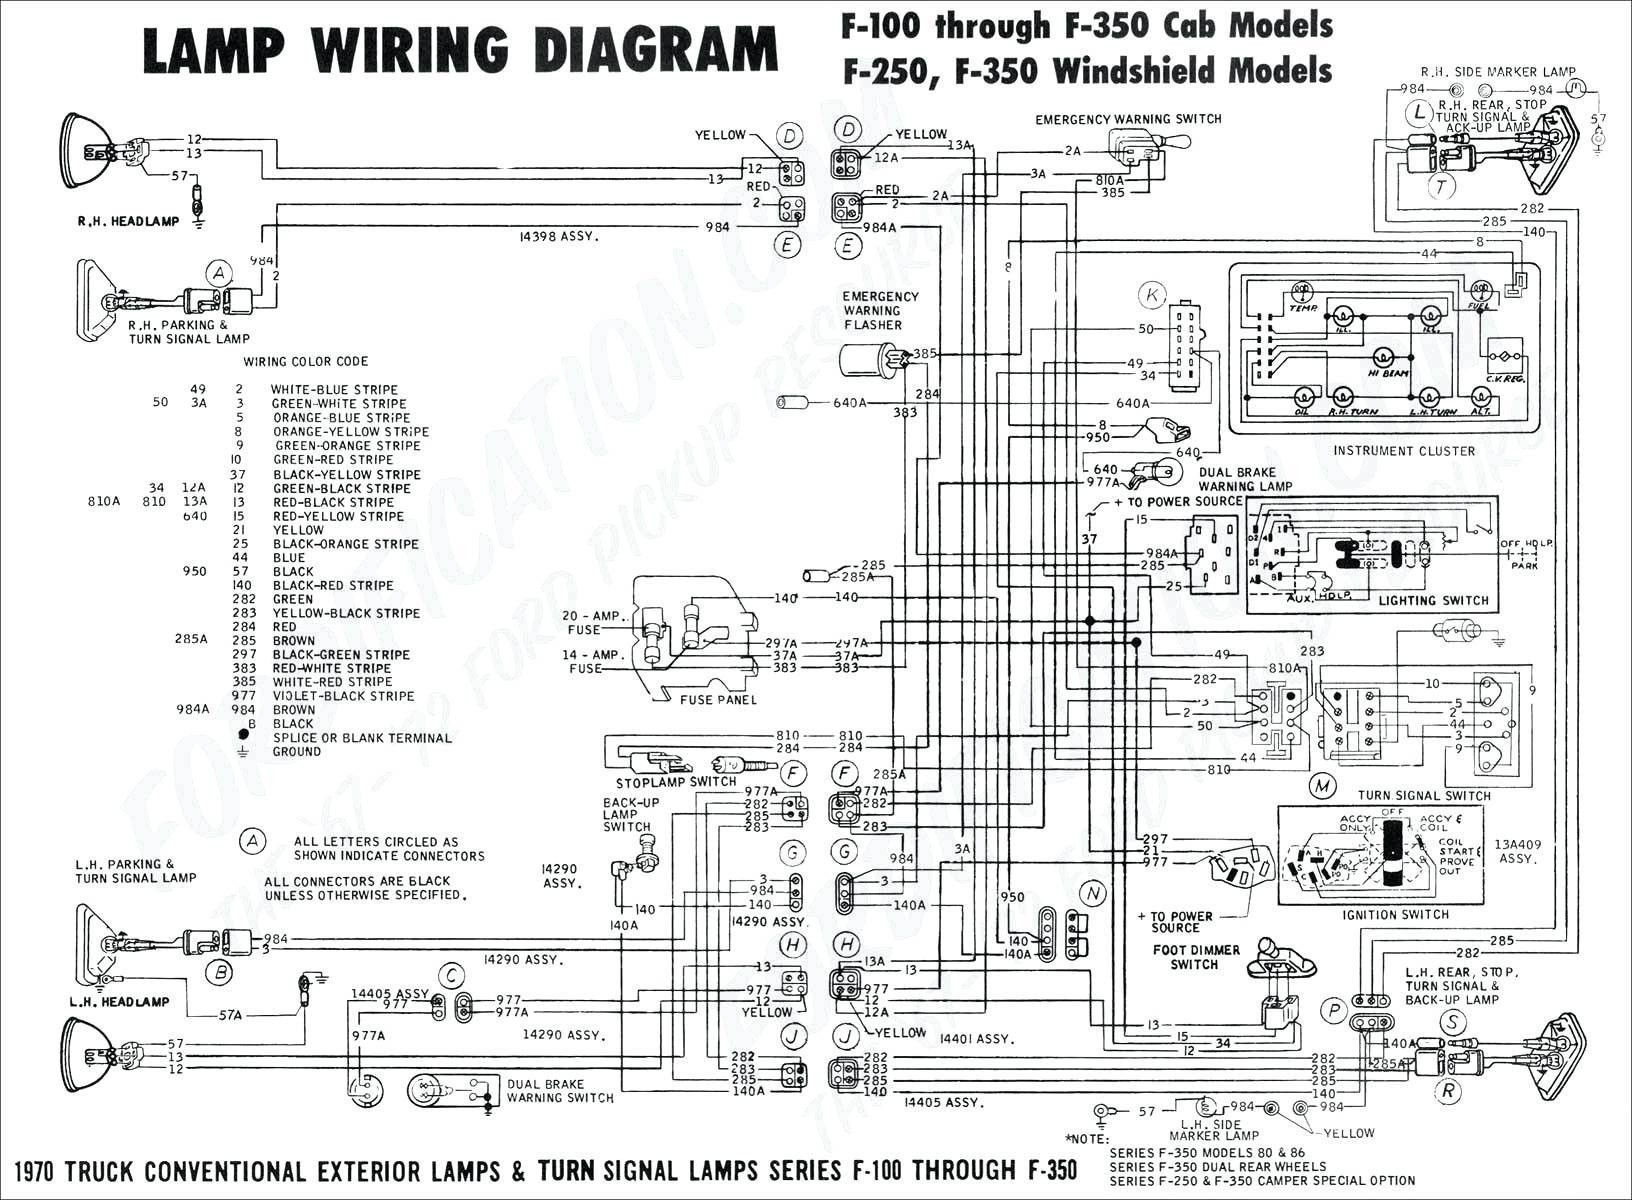 Generator Wire Diagram 5 Pin Military | Wiring Diagram on